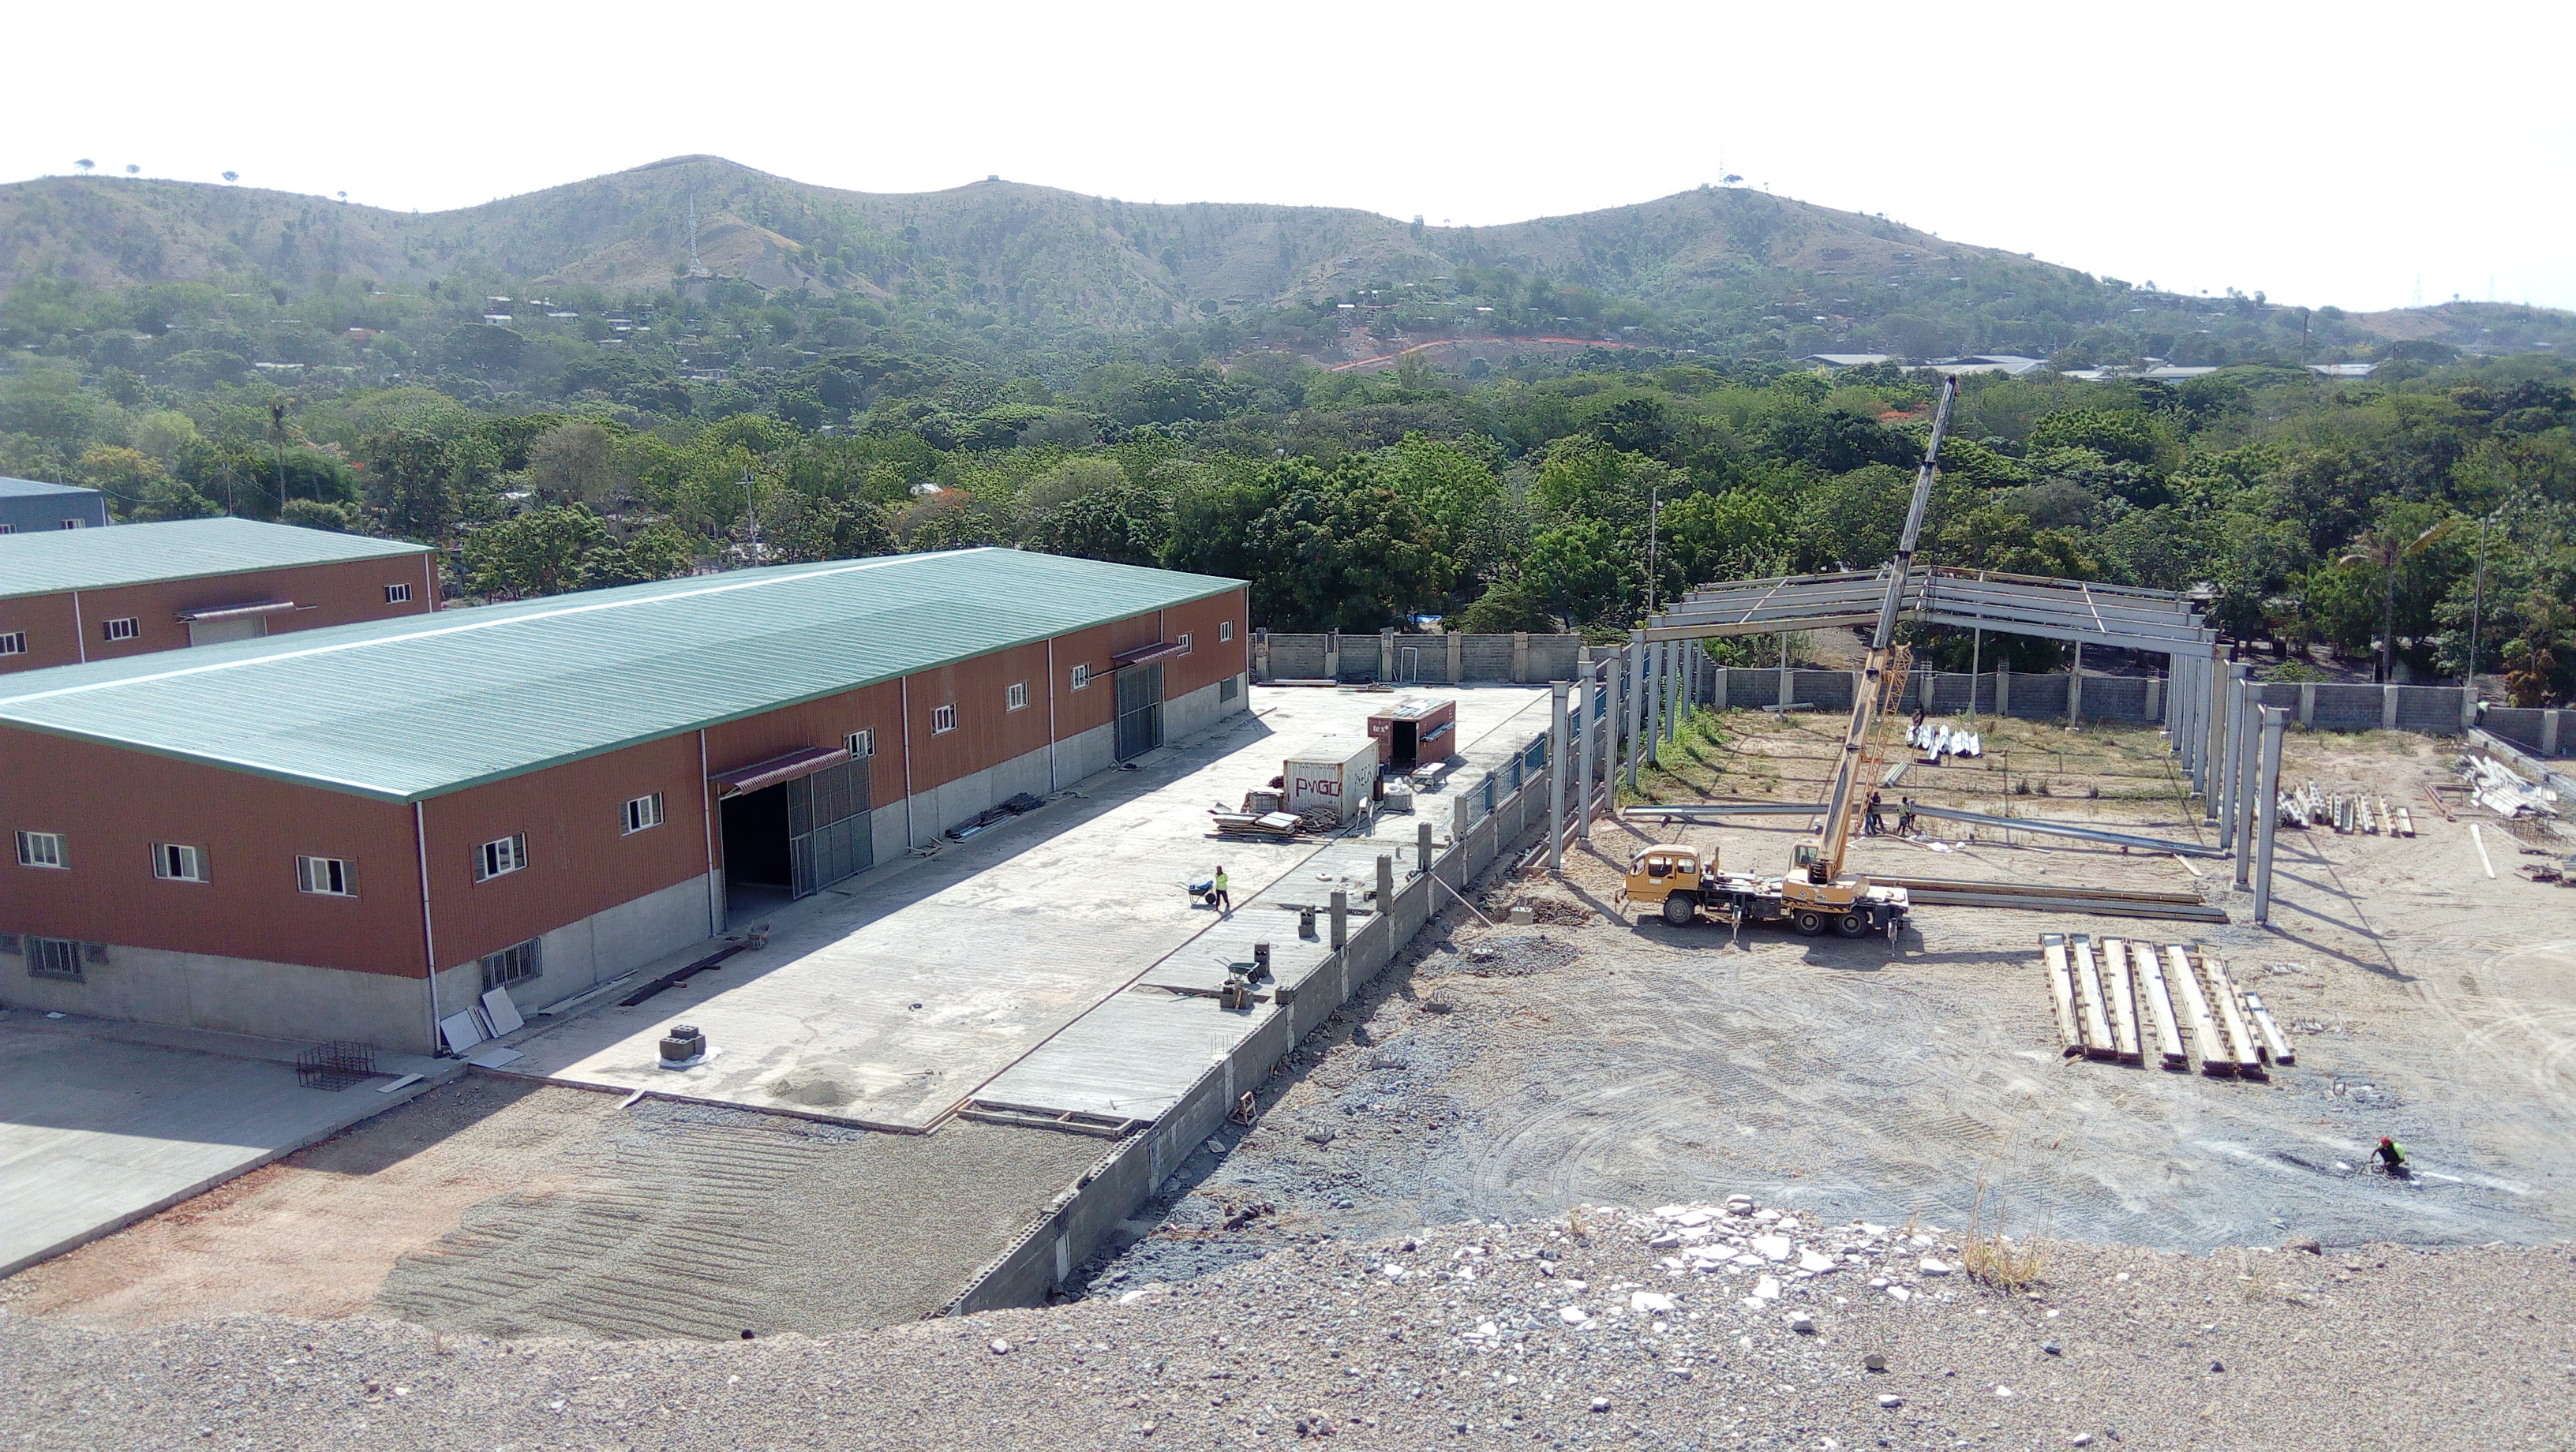 New Development for sale in Port Moresby 6 Mile